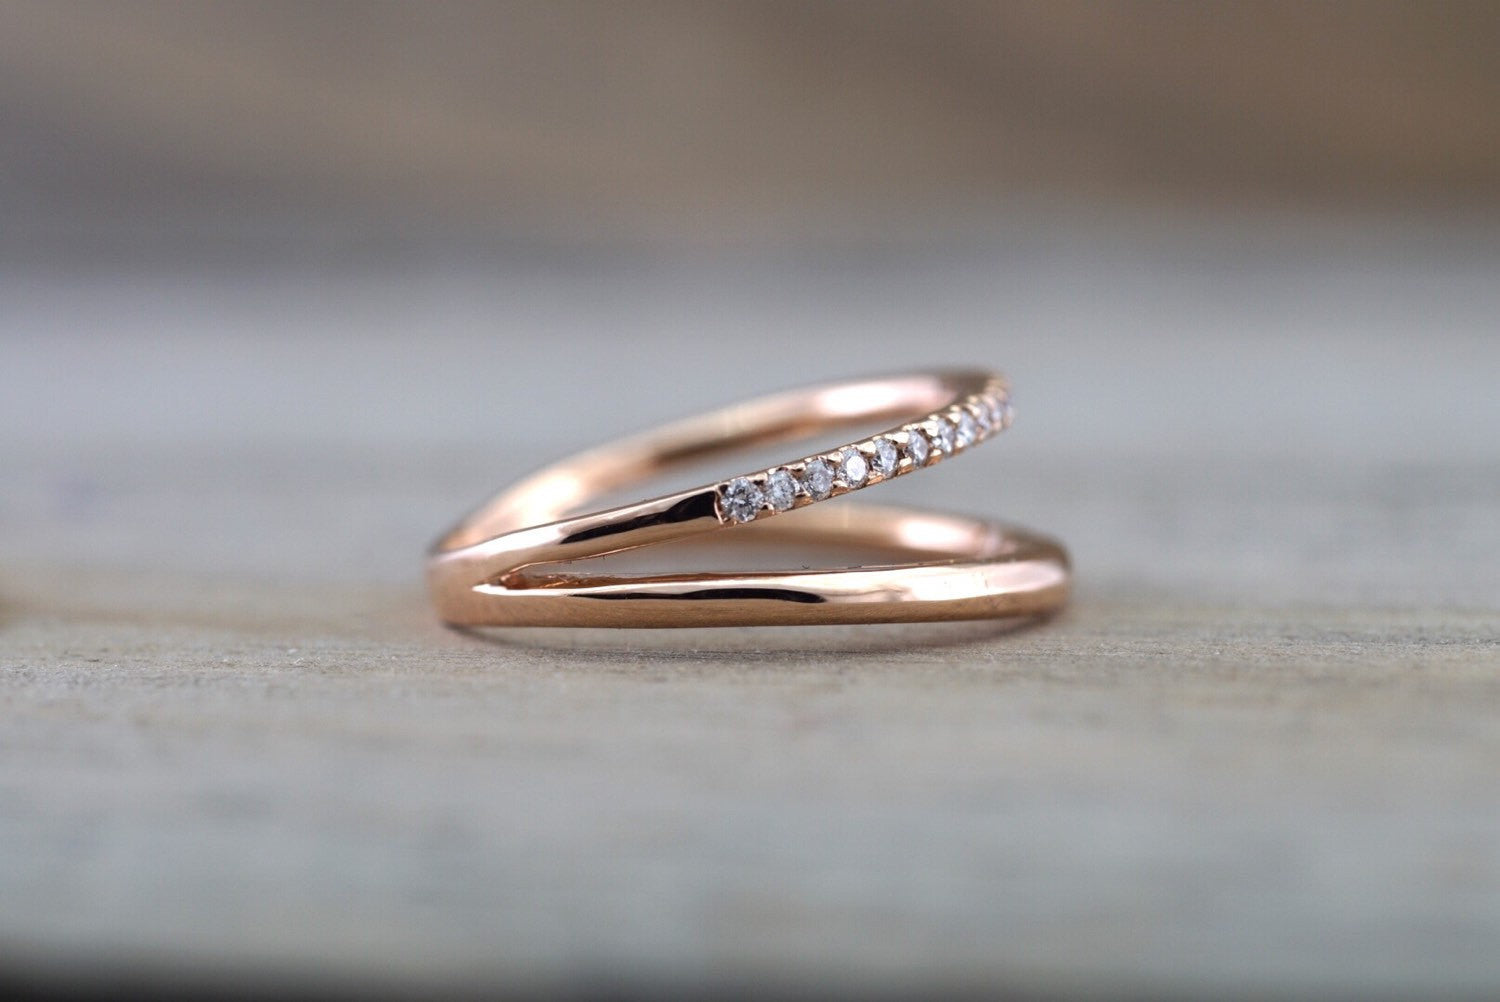 14k Rose Gold Band and Diamond Ring Wedding Band Double Row Curve Open Ring - Brilliant Facets